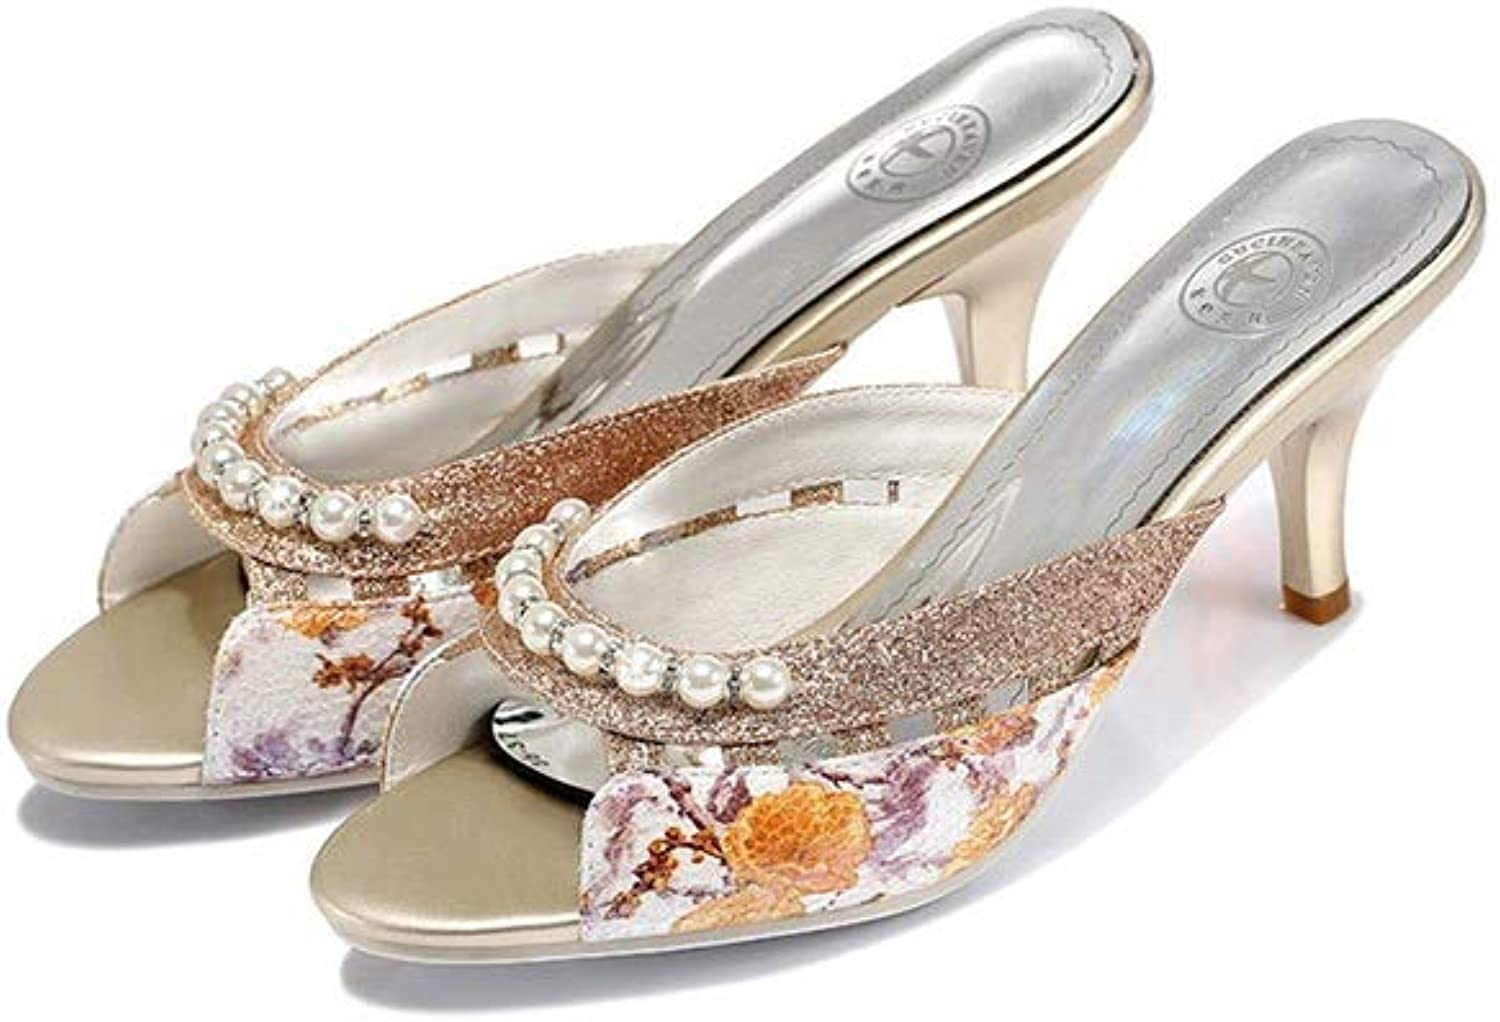 WANGFANG Sandals Women's Slippers, Summer Pearl Ink Painting Kitten Heel Slippers Mules shoes High-Heeled Slippers (color   Yellow, Size   US8 EU39 UK6 MX5.5 CN39)